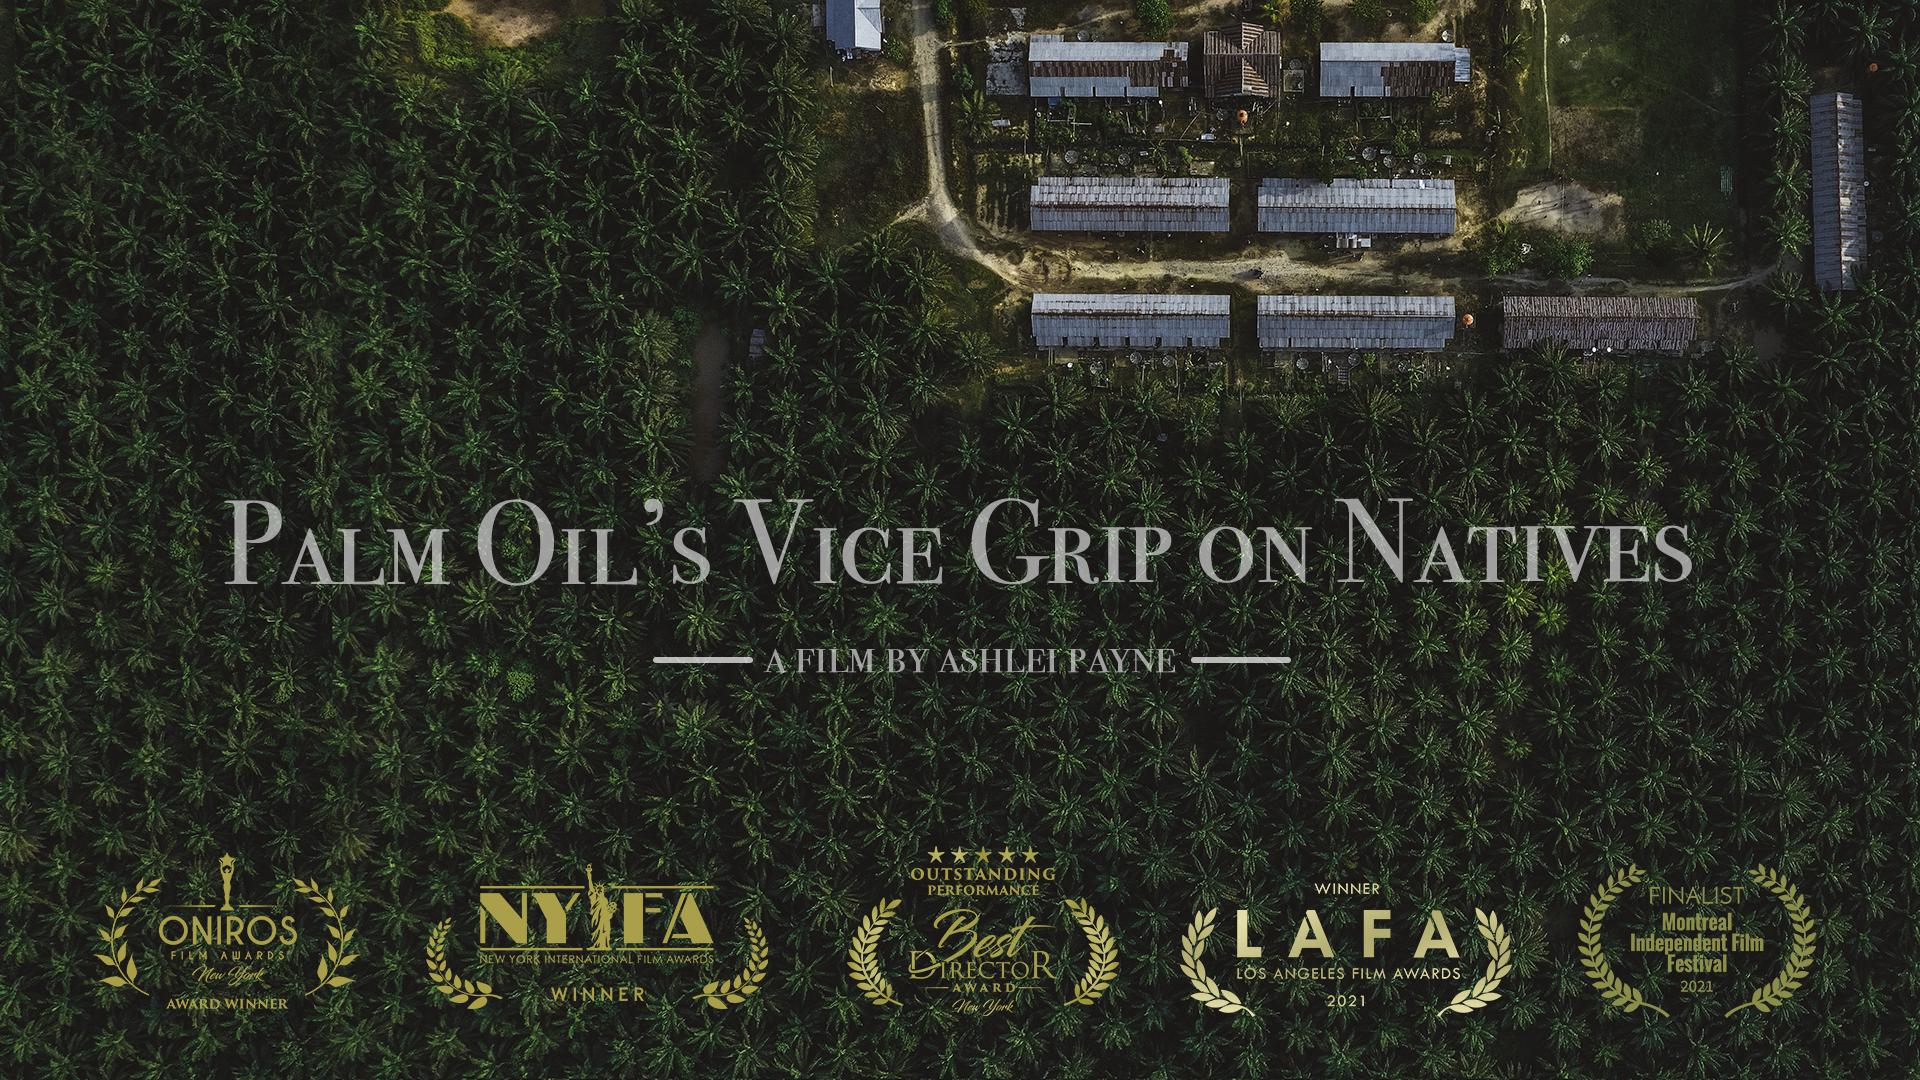 Palm Oil's Vice Grip on Natives